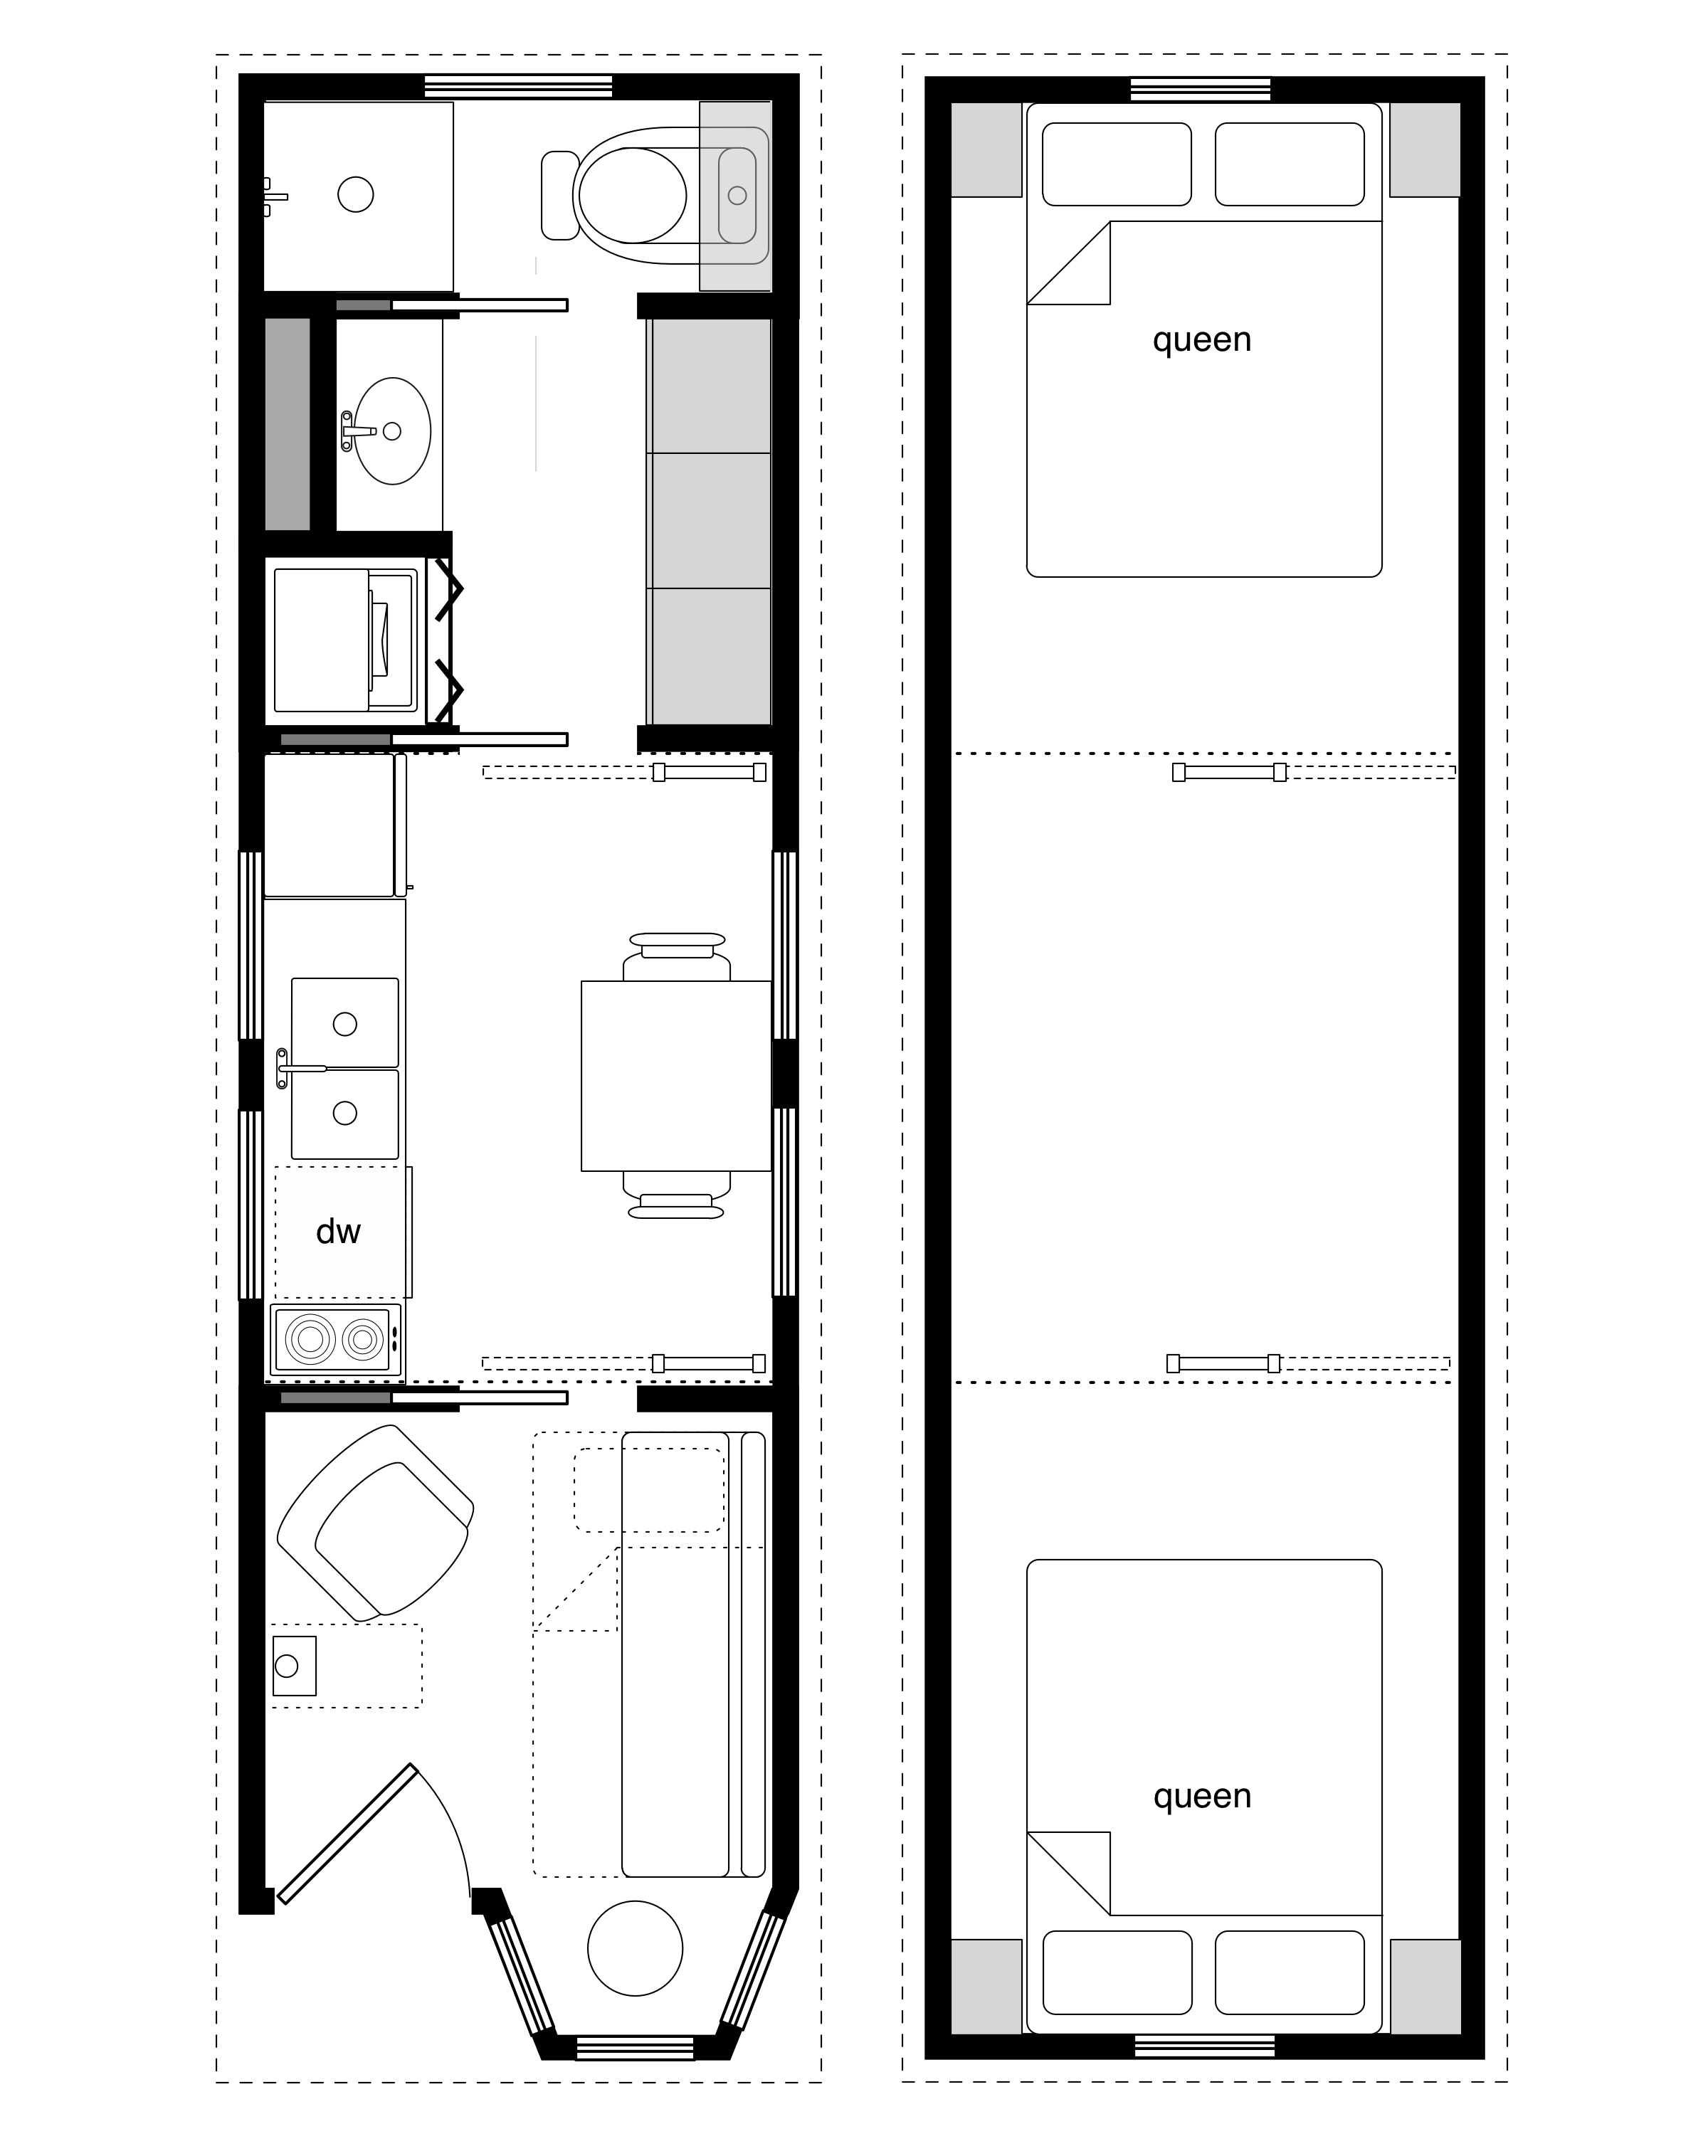 8x28 coastal cottage 7 back 1 3 of plan and two lofts work front 2 Household Wiring Diagrams 8x28 coastal cottage 7 back 1 3 of plan and two lofts work front 2 3 s needs reworked